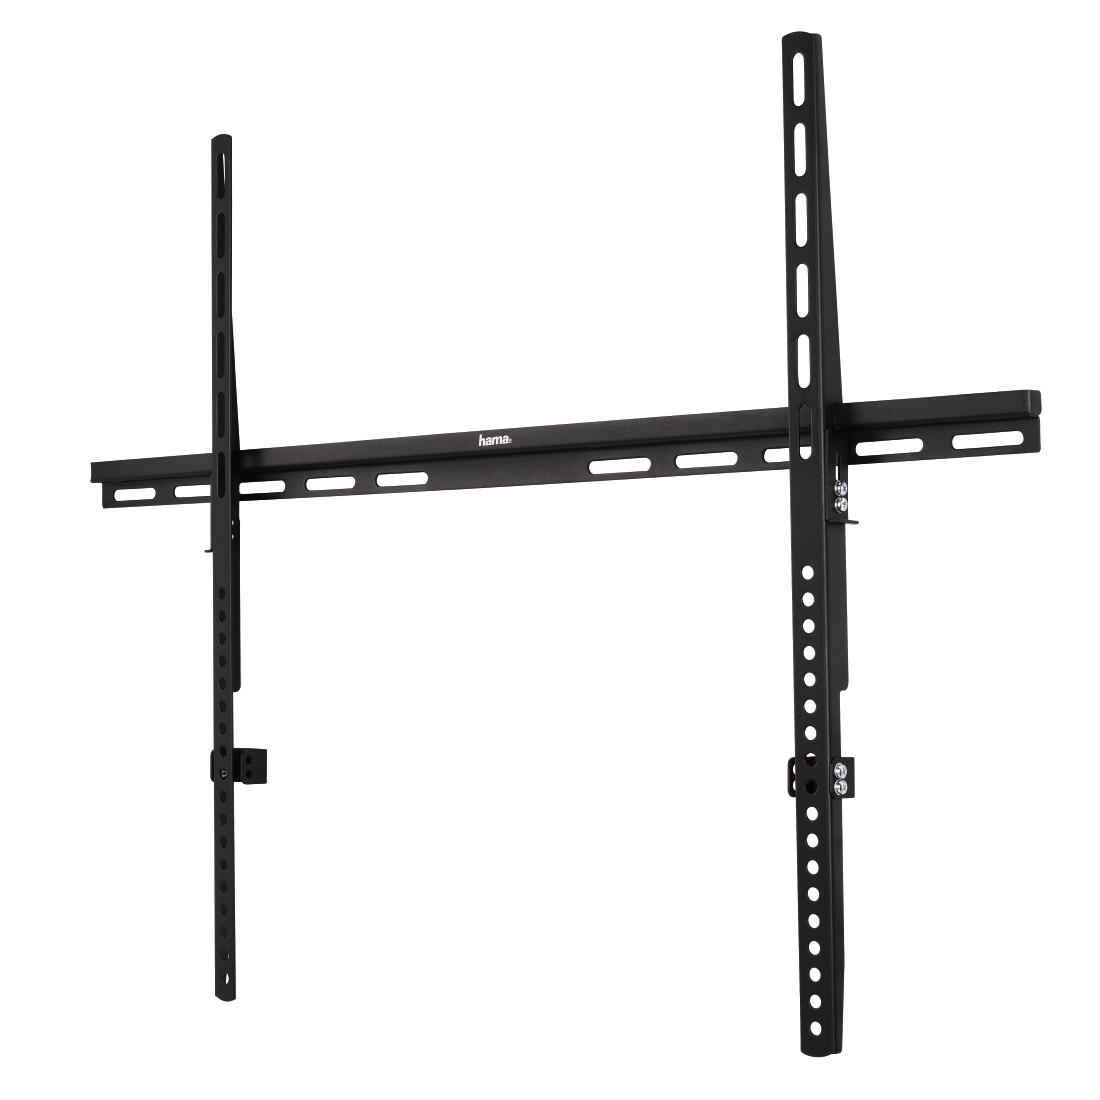 hama products 00012027 fixed super flat wall bracket for tvs up to 46 inch